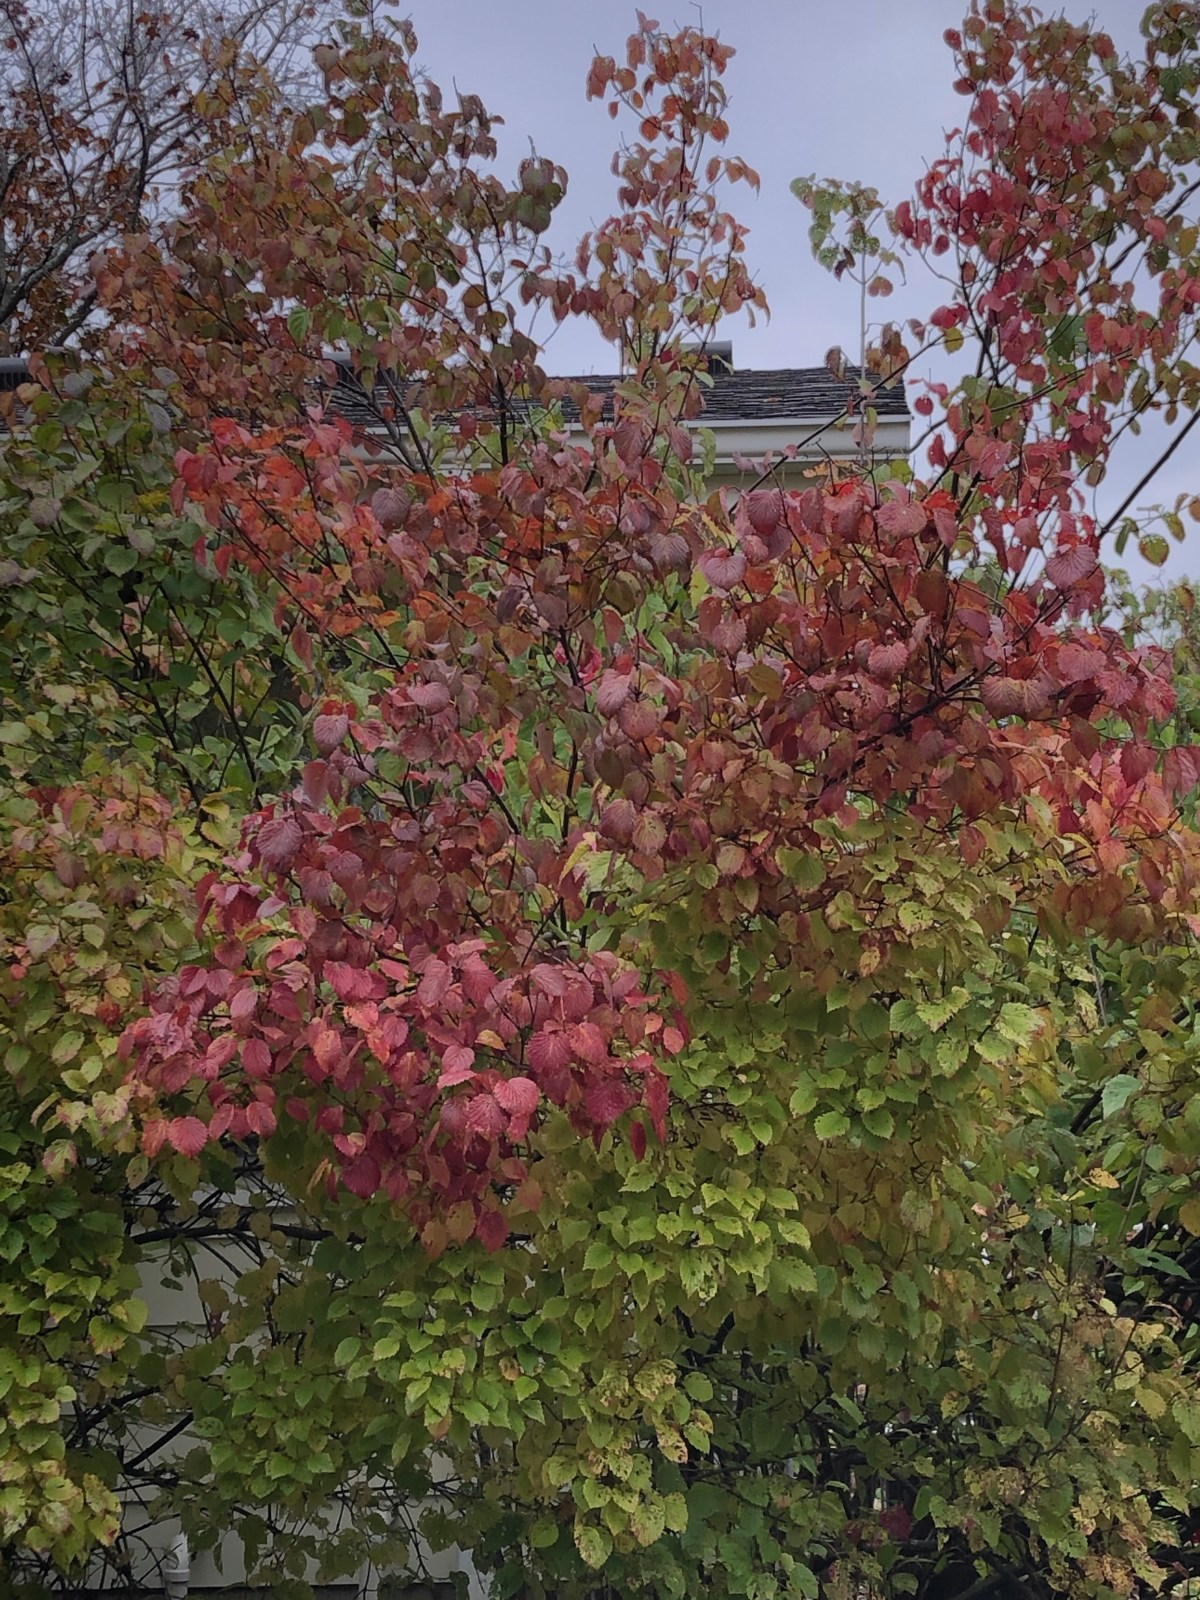 serviceberry, full foliage, as it turns from green to brilliant scarlet, still green along the bottom, leaves turning from the top down